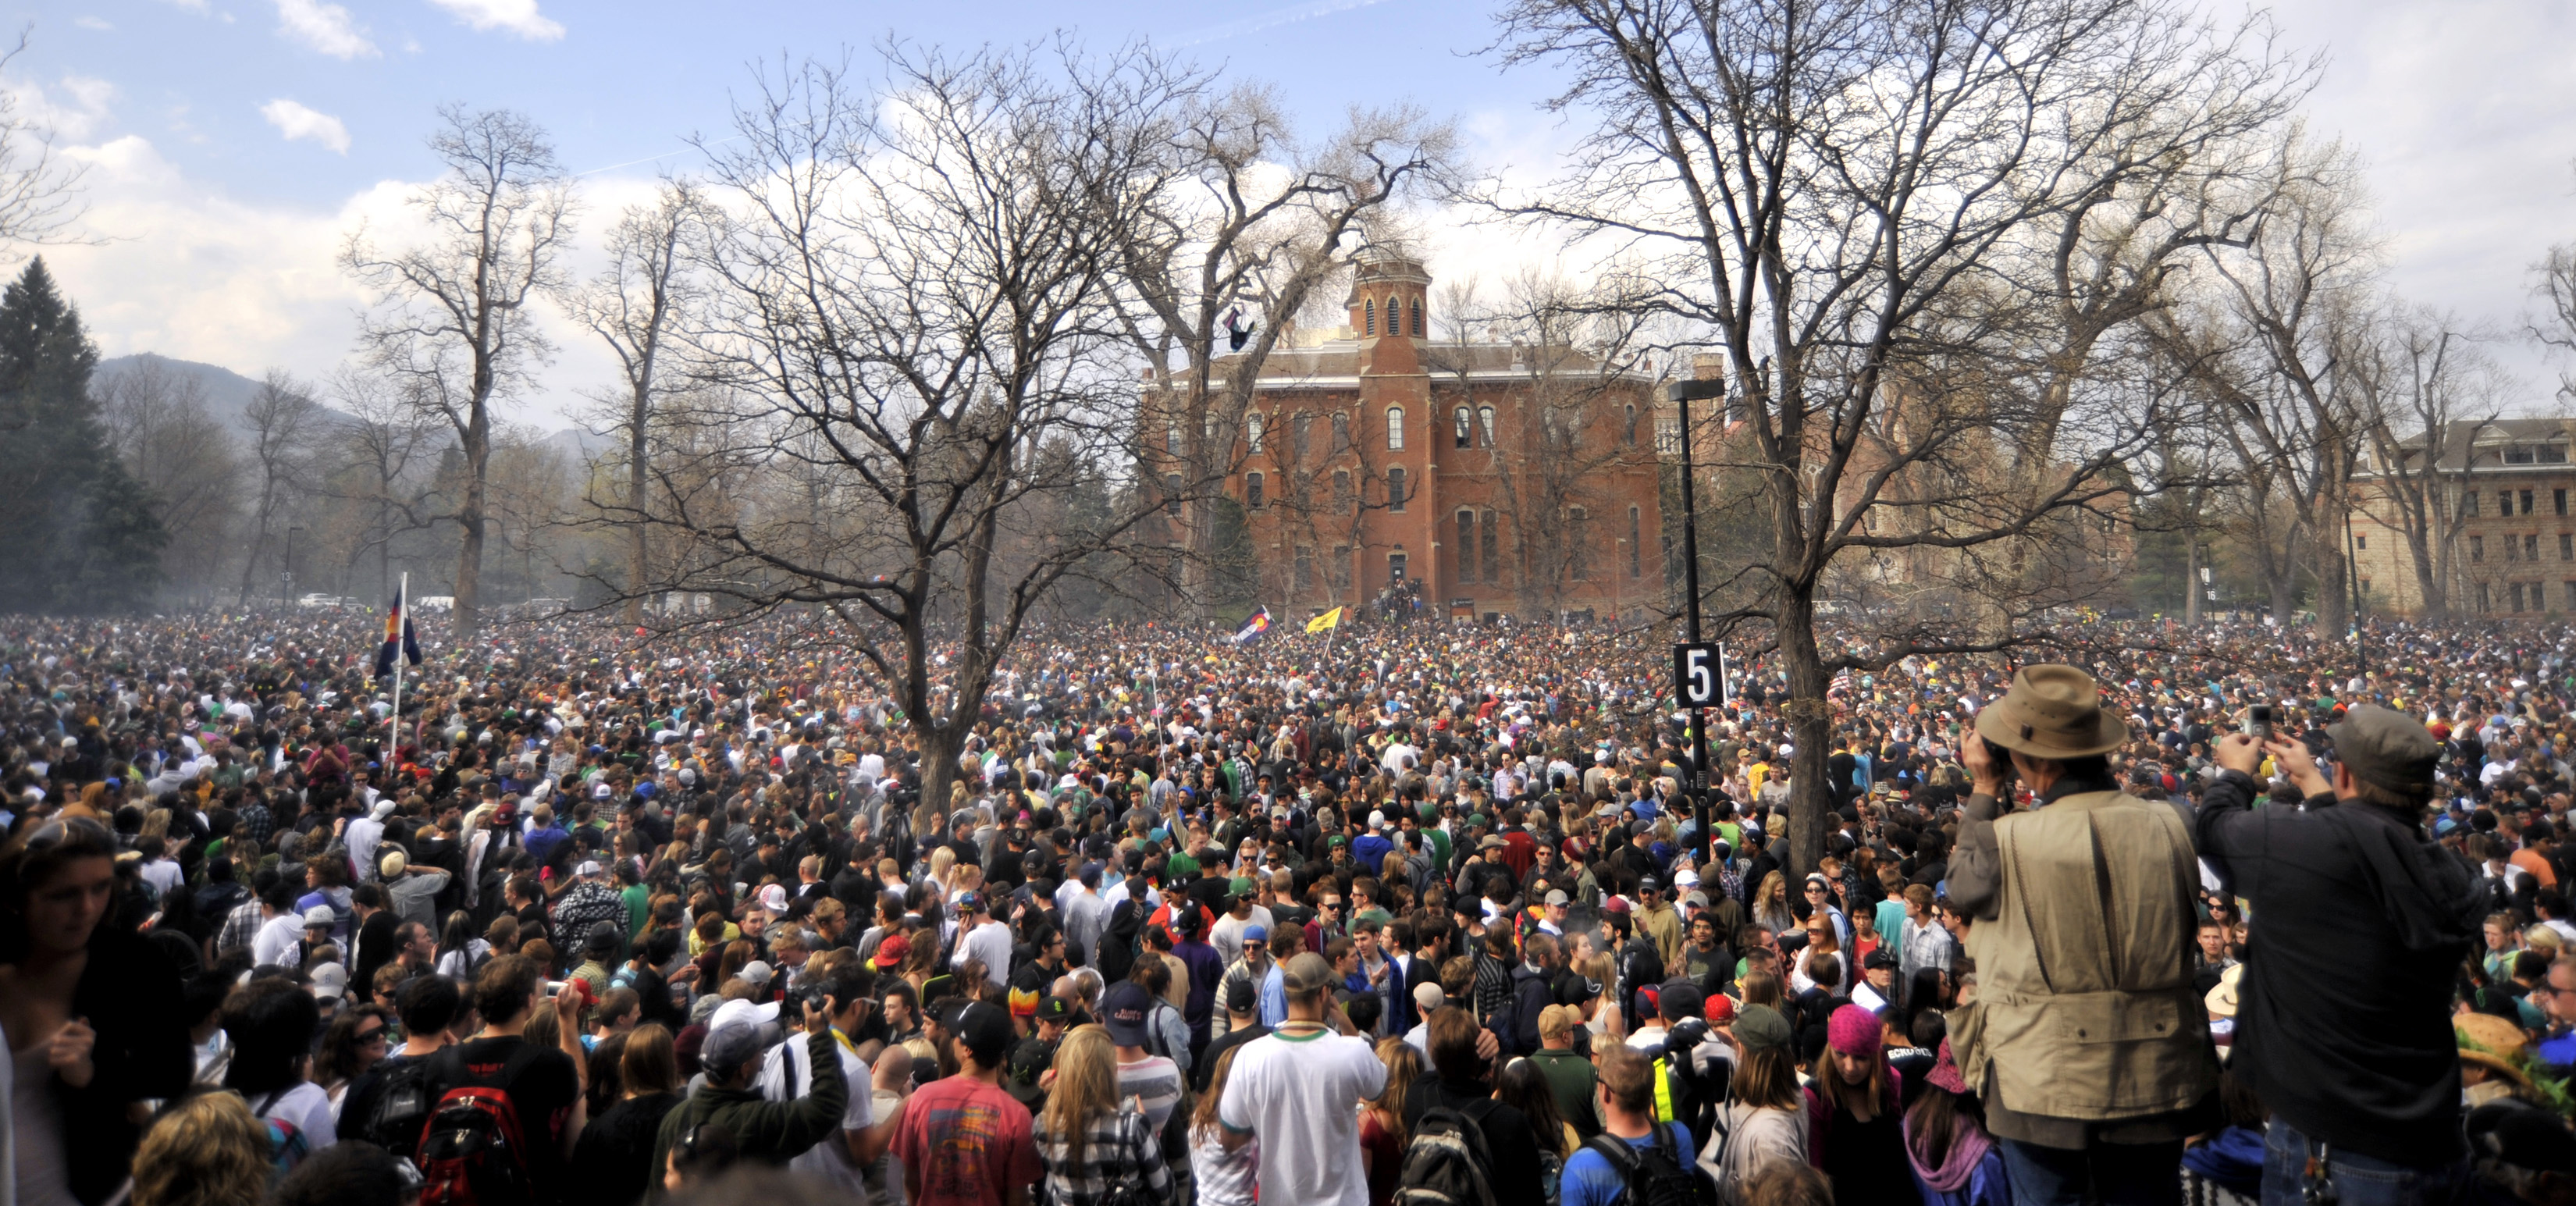 The alleged 'political' purpose of 4/20 at CU-Boulder is down to seeds and stems at this point.